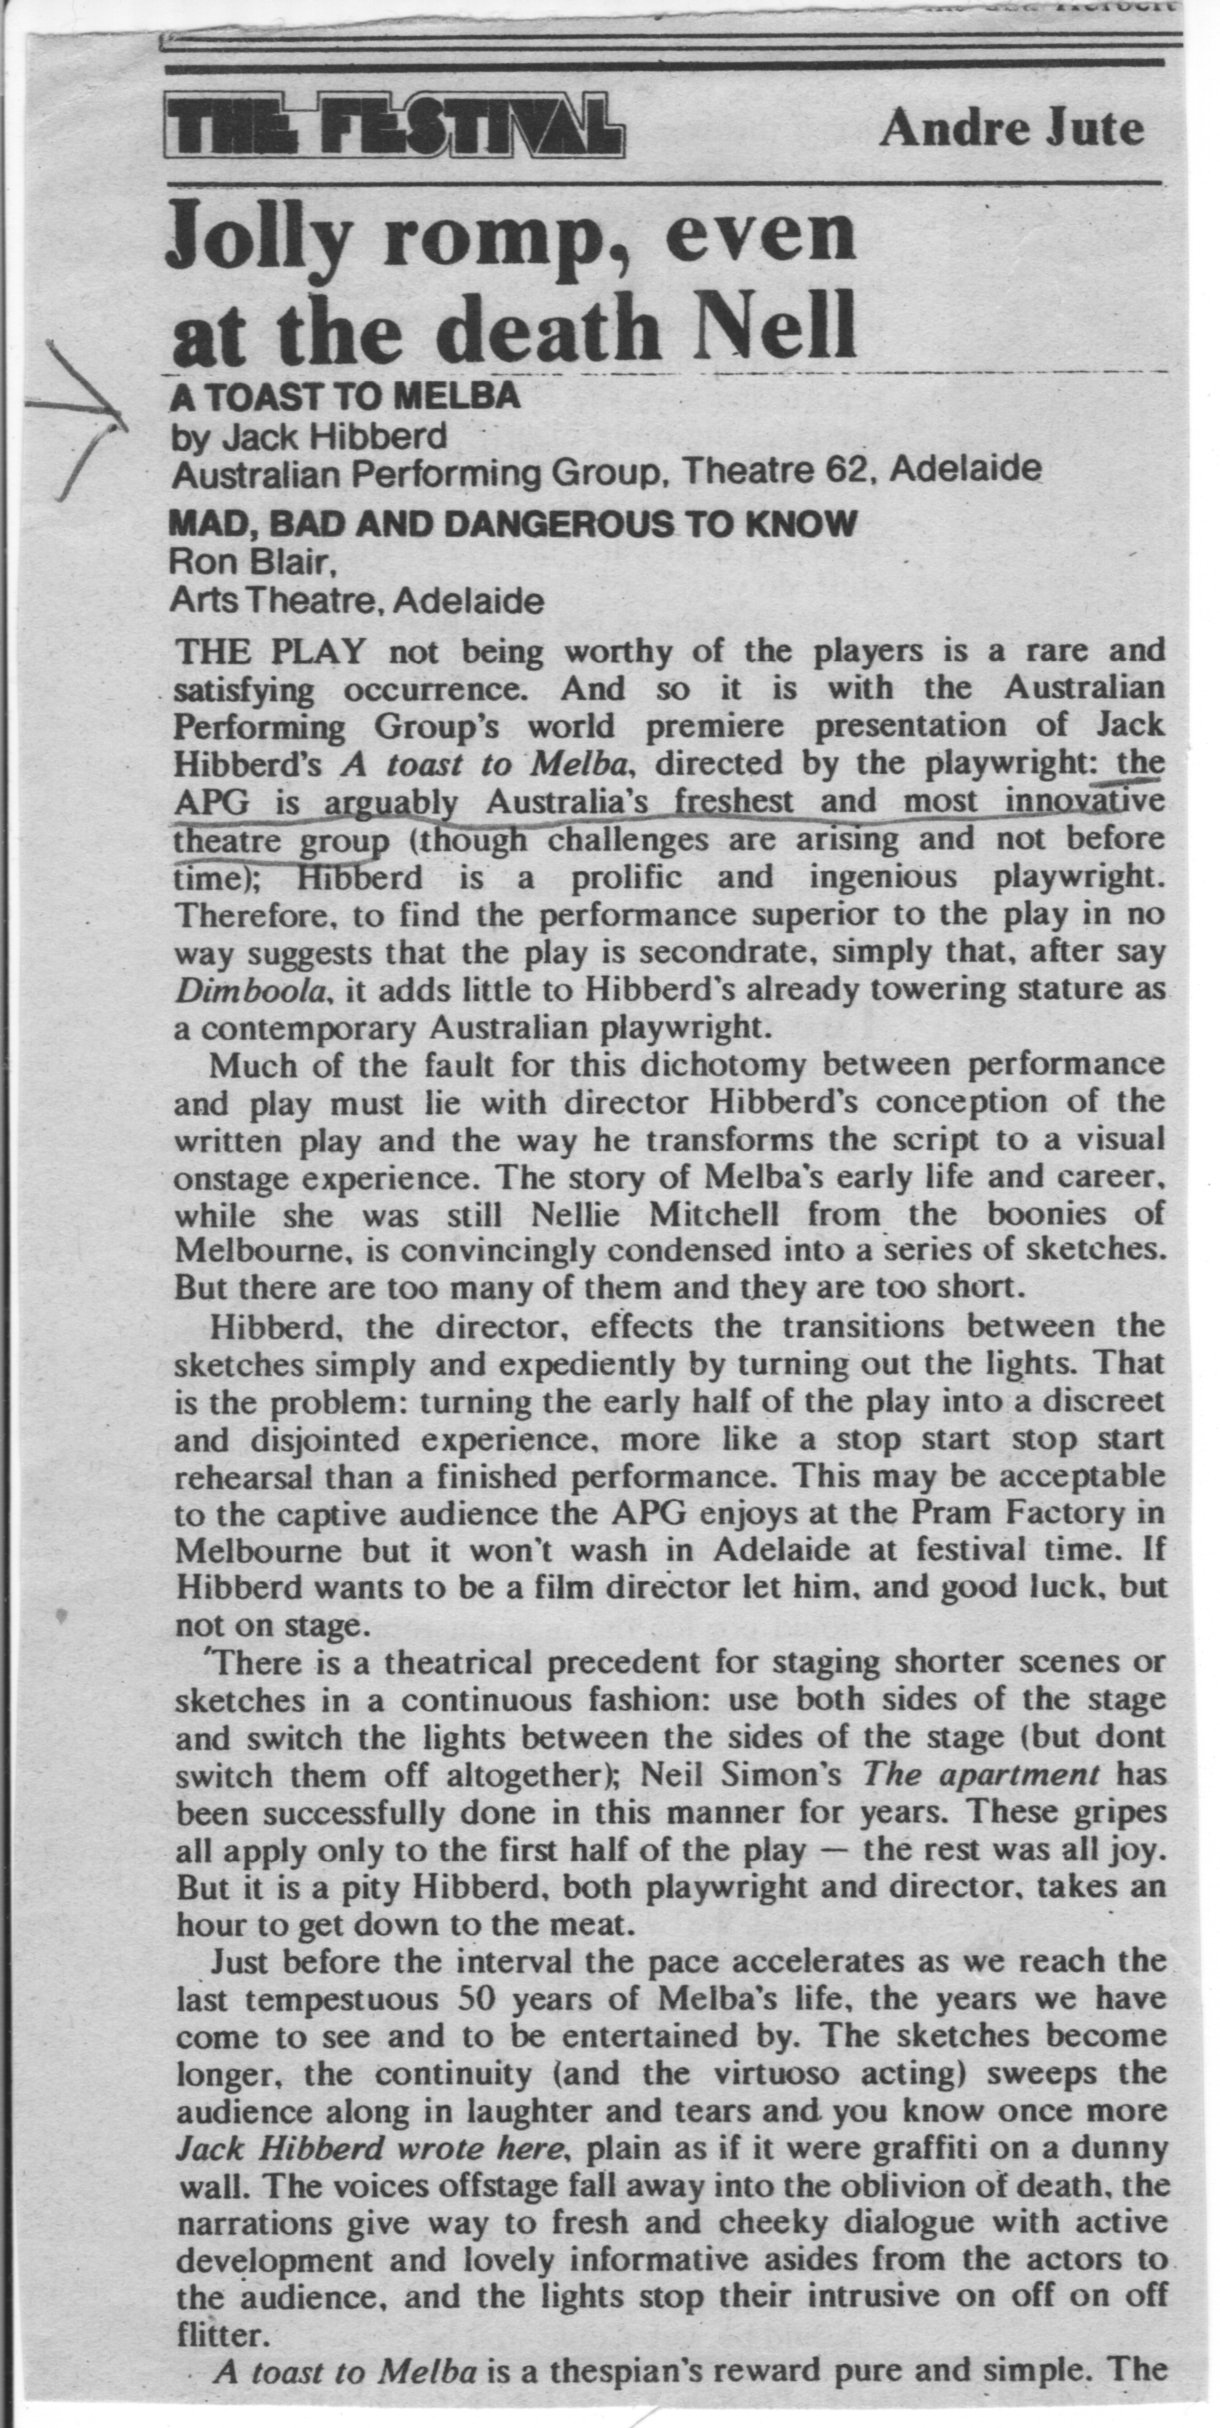 Toast-To-Melba-Adelaide-Review-Jute-26March1976_p1